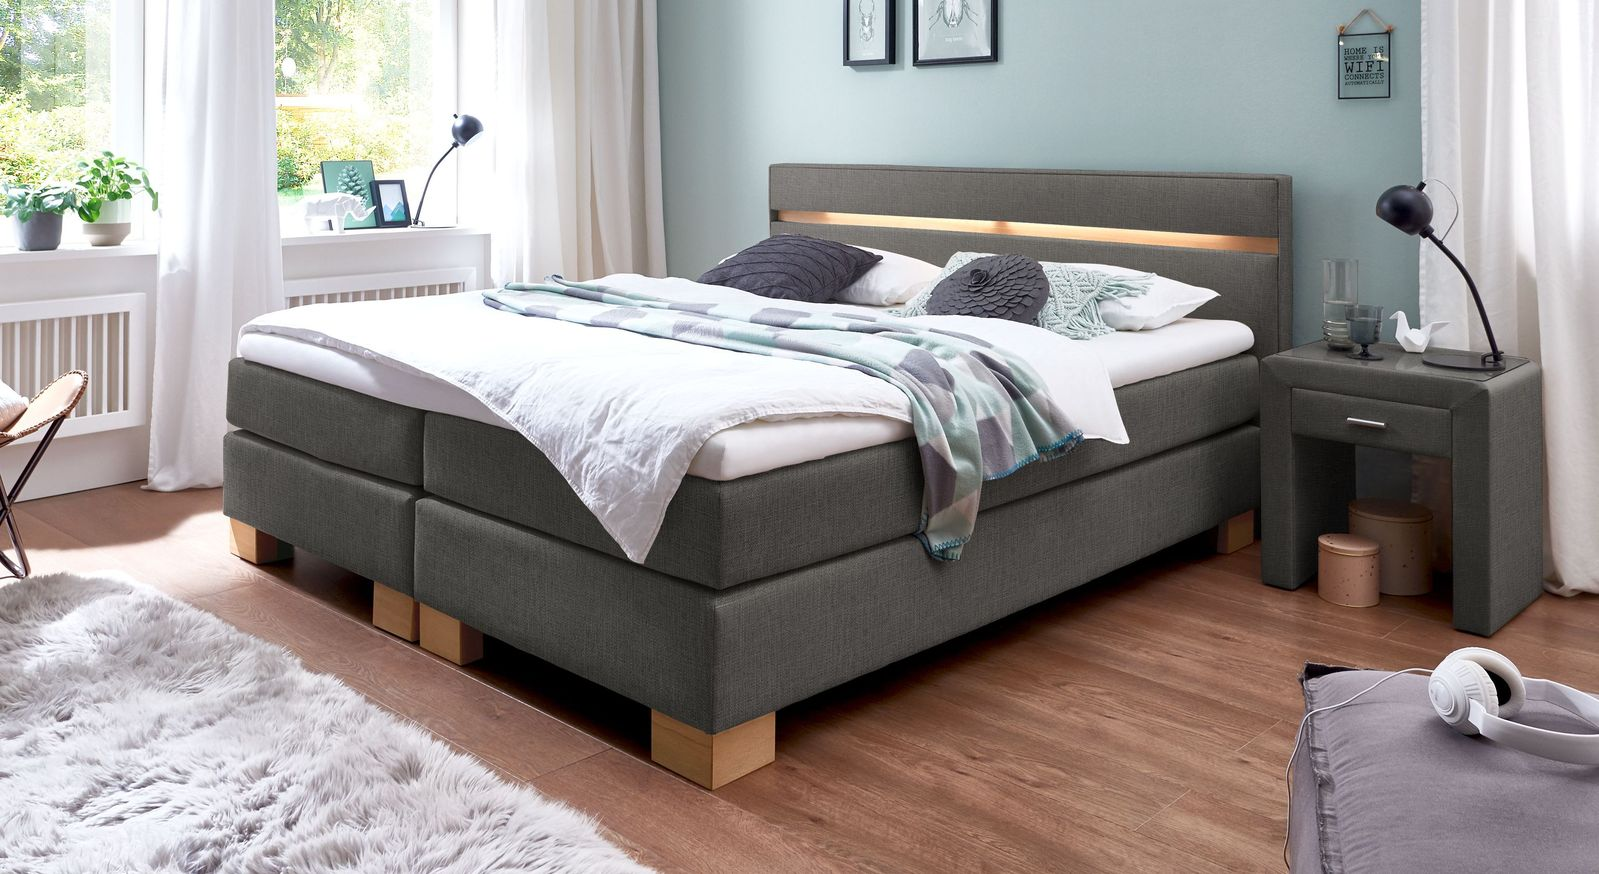 53 cm hohes Boxspringbett Vincenzo aus meliertem Webstoff in Anthrazit